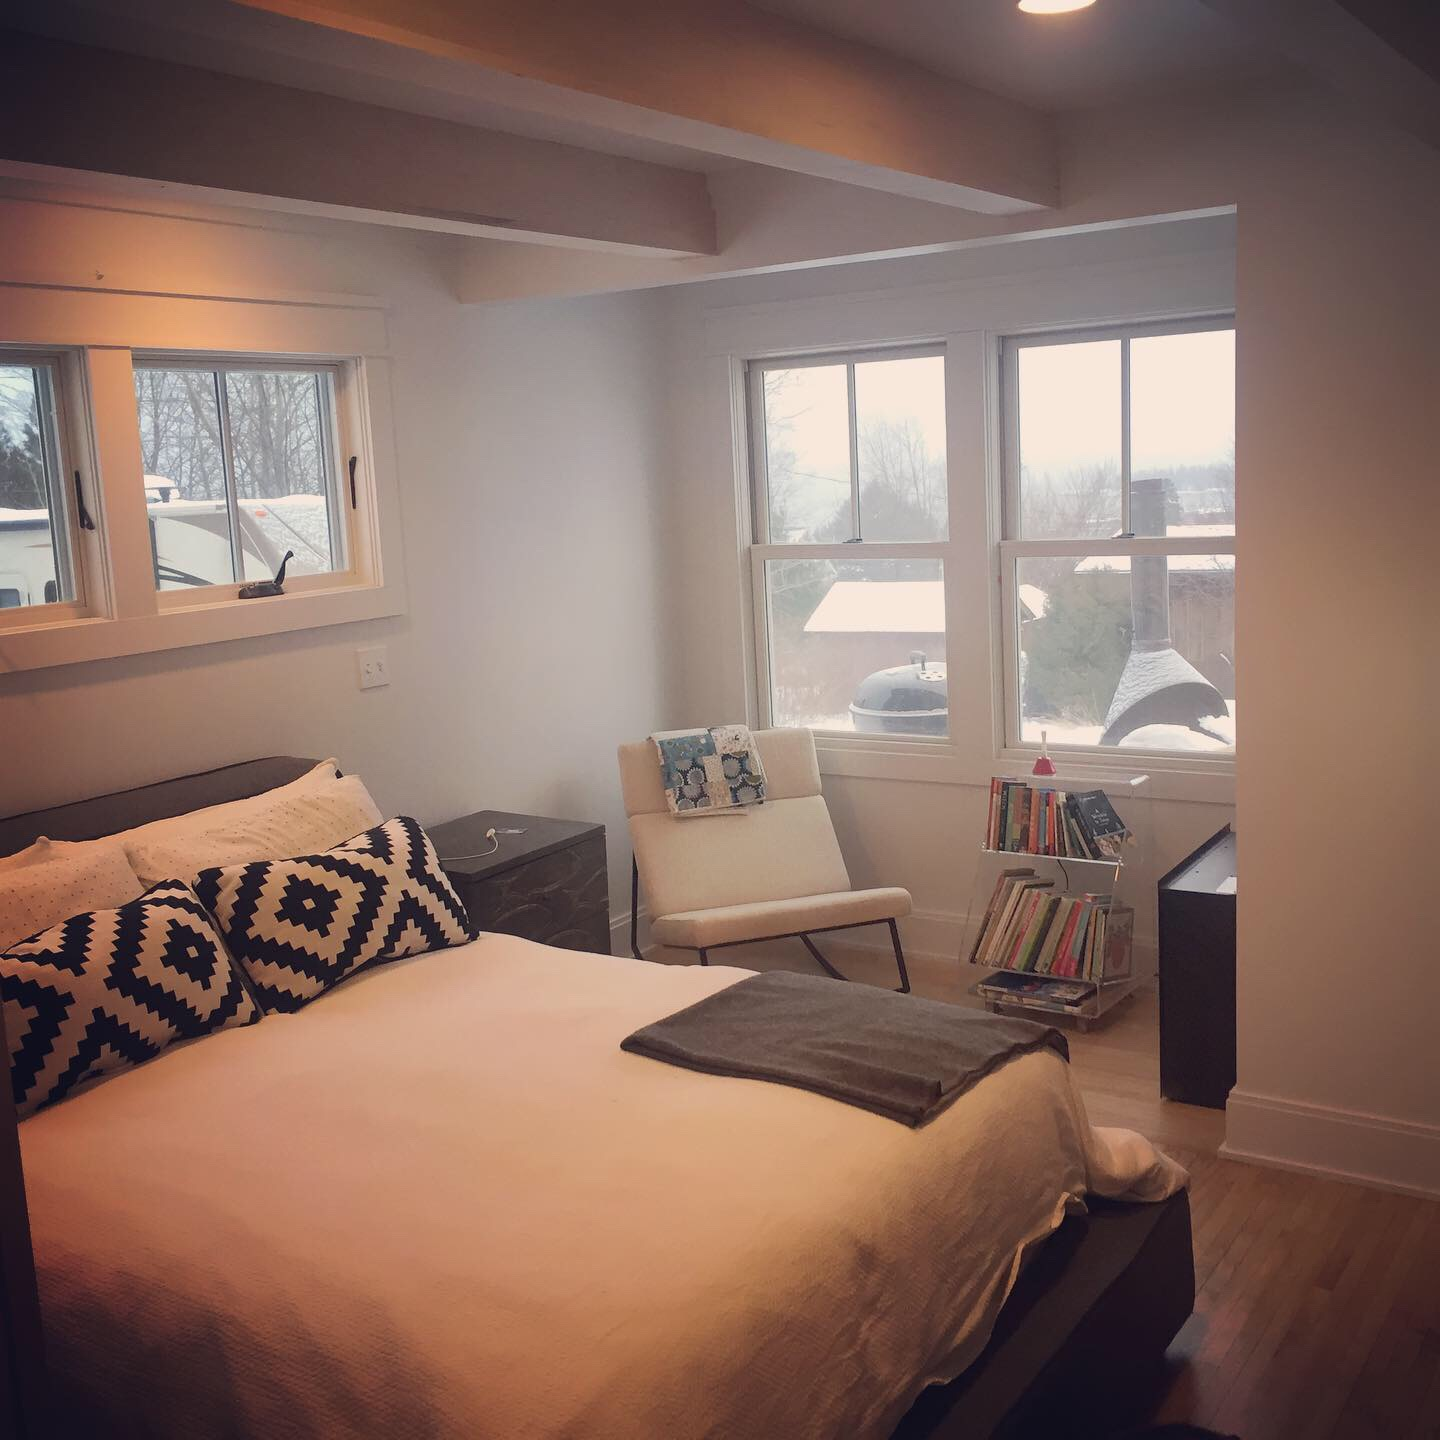 The master bedroom features his and hers closets, and a sunny alcove for sitting and overlooking the big lake. Floors are refinished birdseye maple from 1935 and maple beams help add interest and stlye to the ceiling.